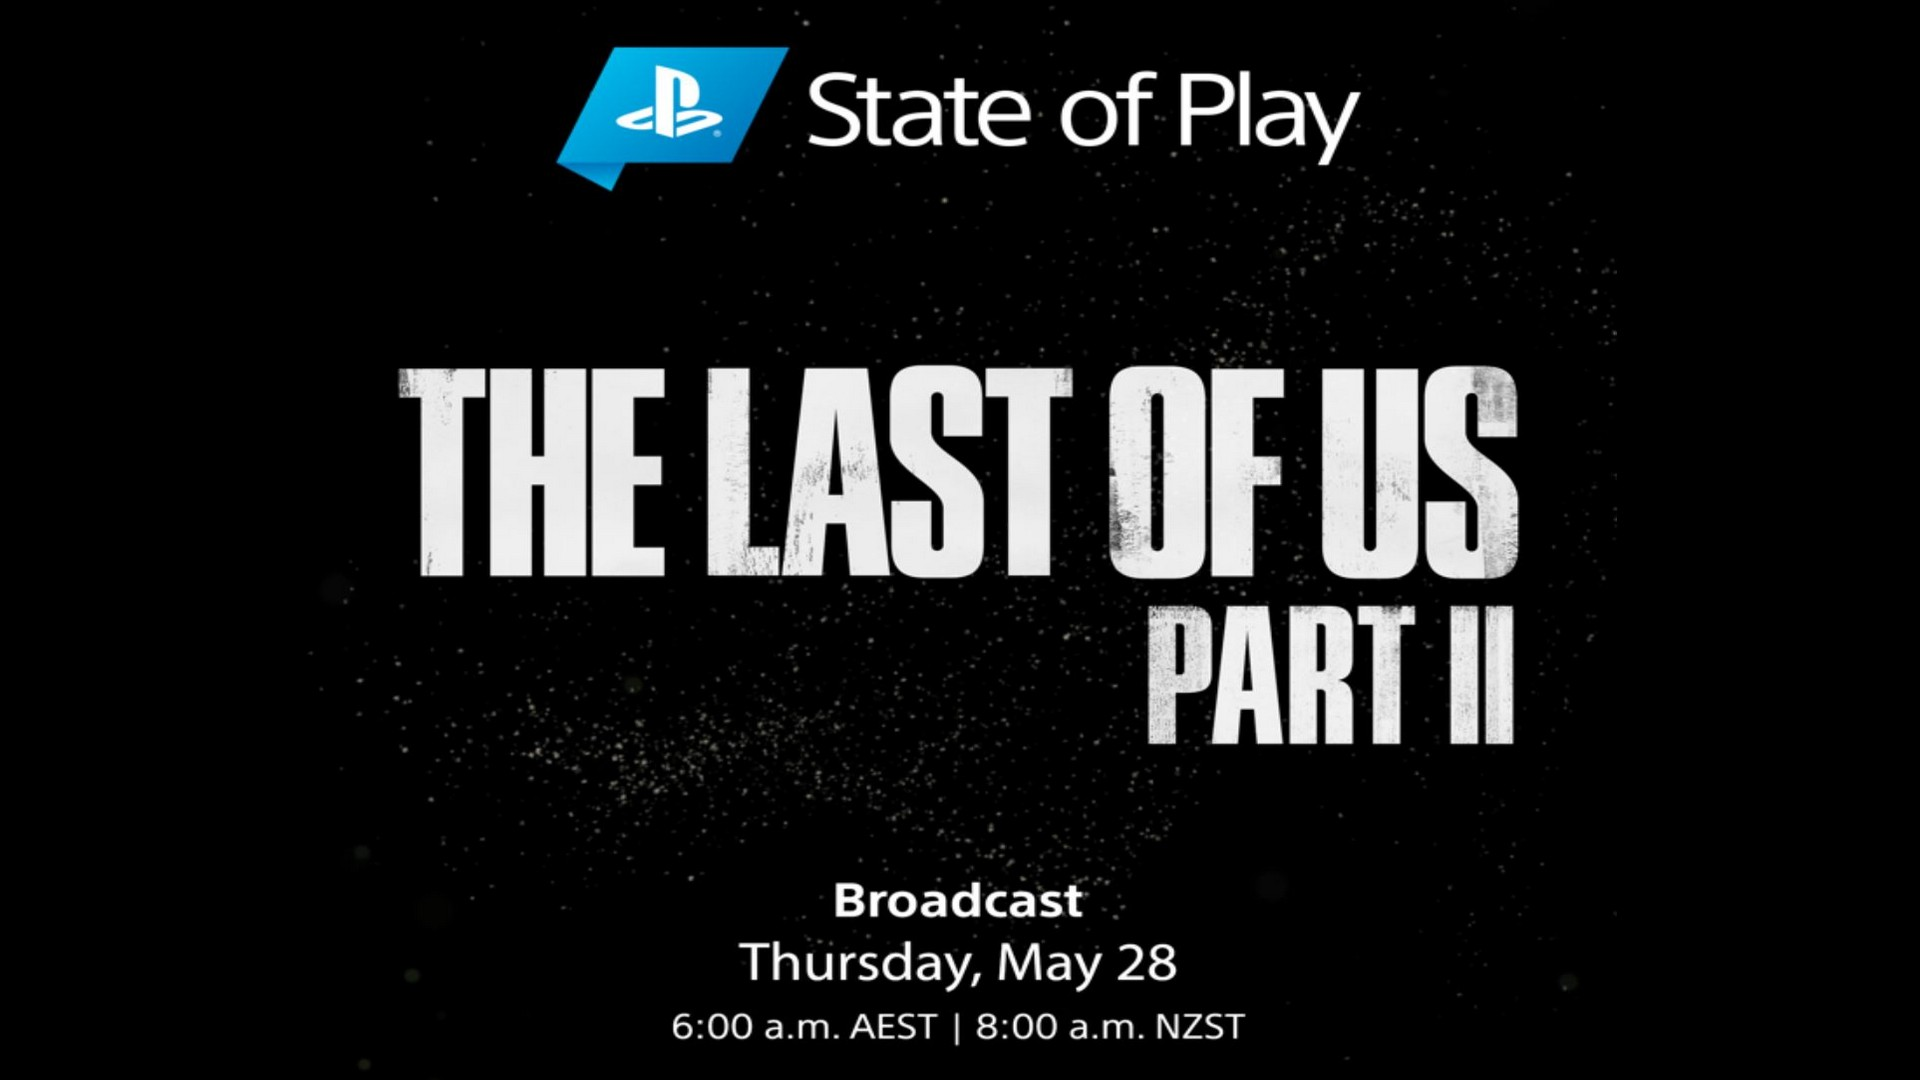 State of Play: Get a Preview Of The Last of Us Part II This Thursday